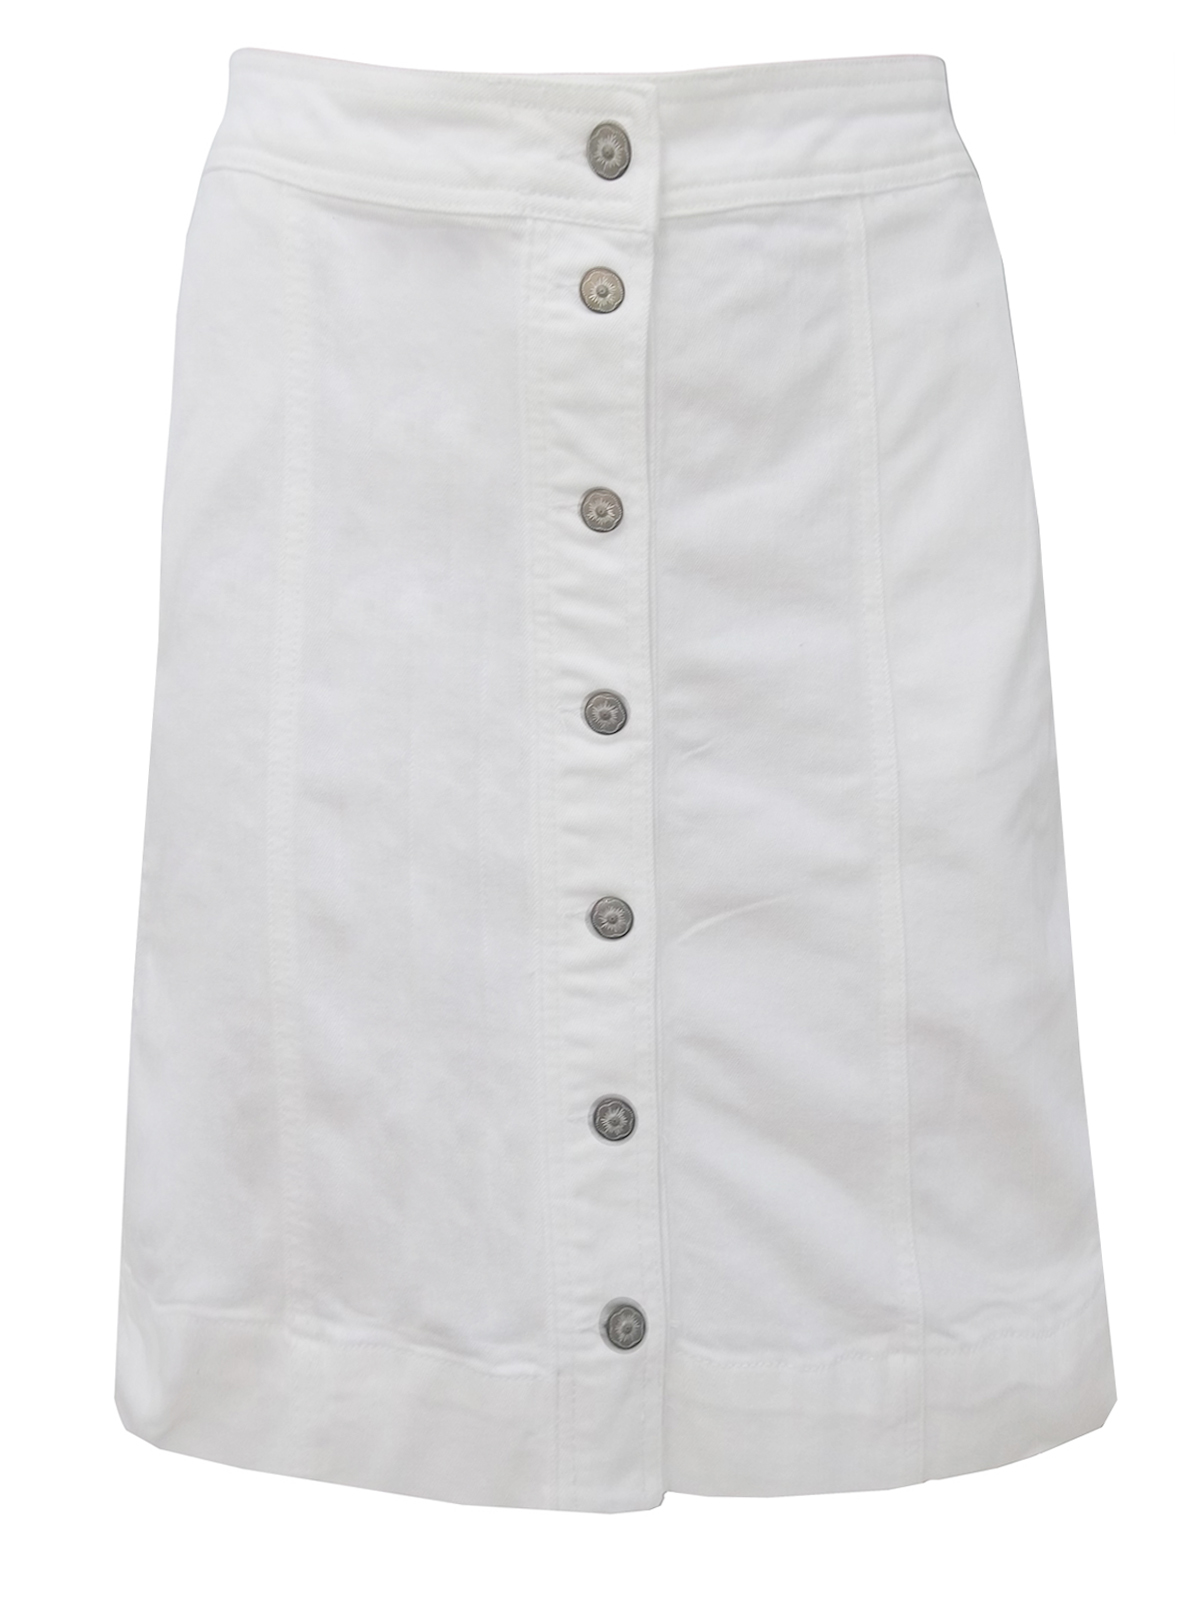 300087bf14 Marks and Spencer - - M&5 WHITE Button Through Denim Skirt - Size 20 to 22